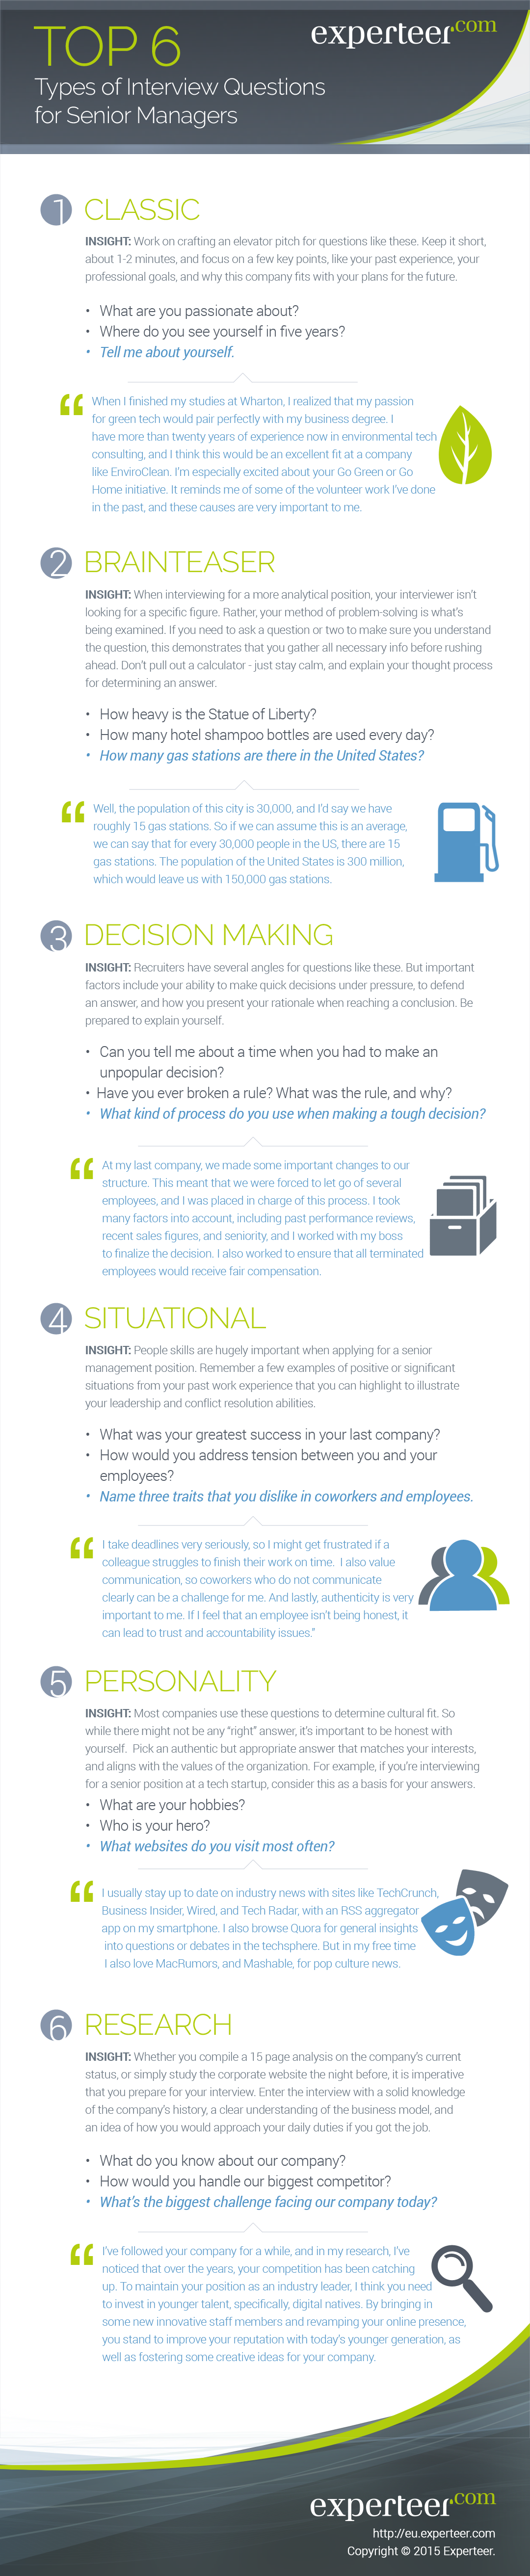 infographic the top types of interview questions for senior infographic the top 6 types of interview questions for senior managers